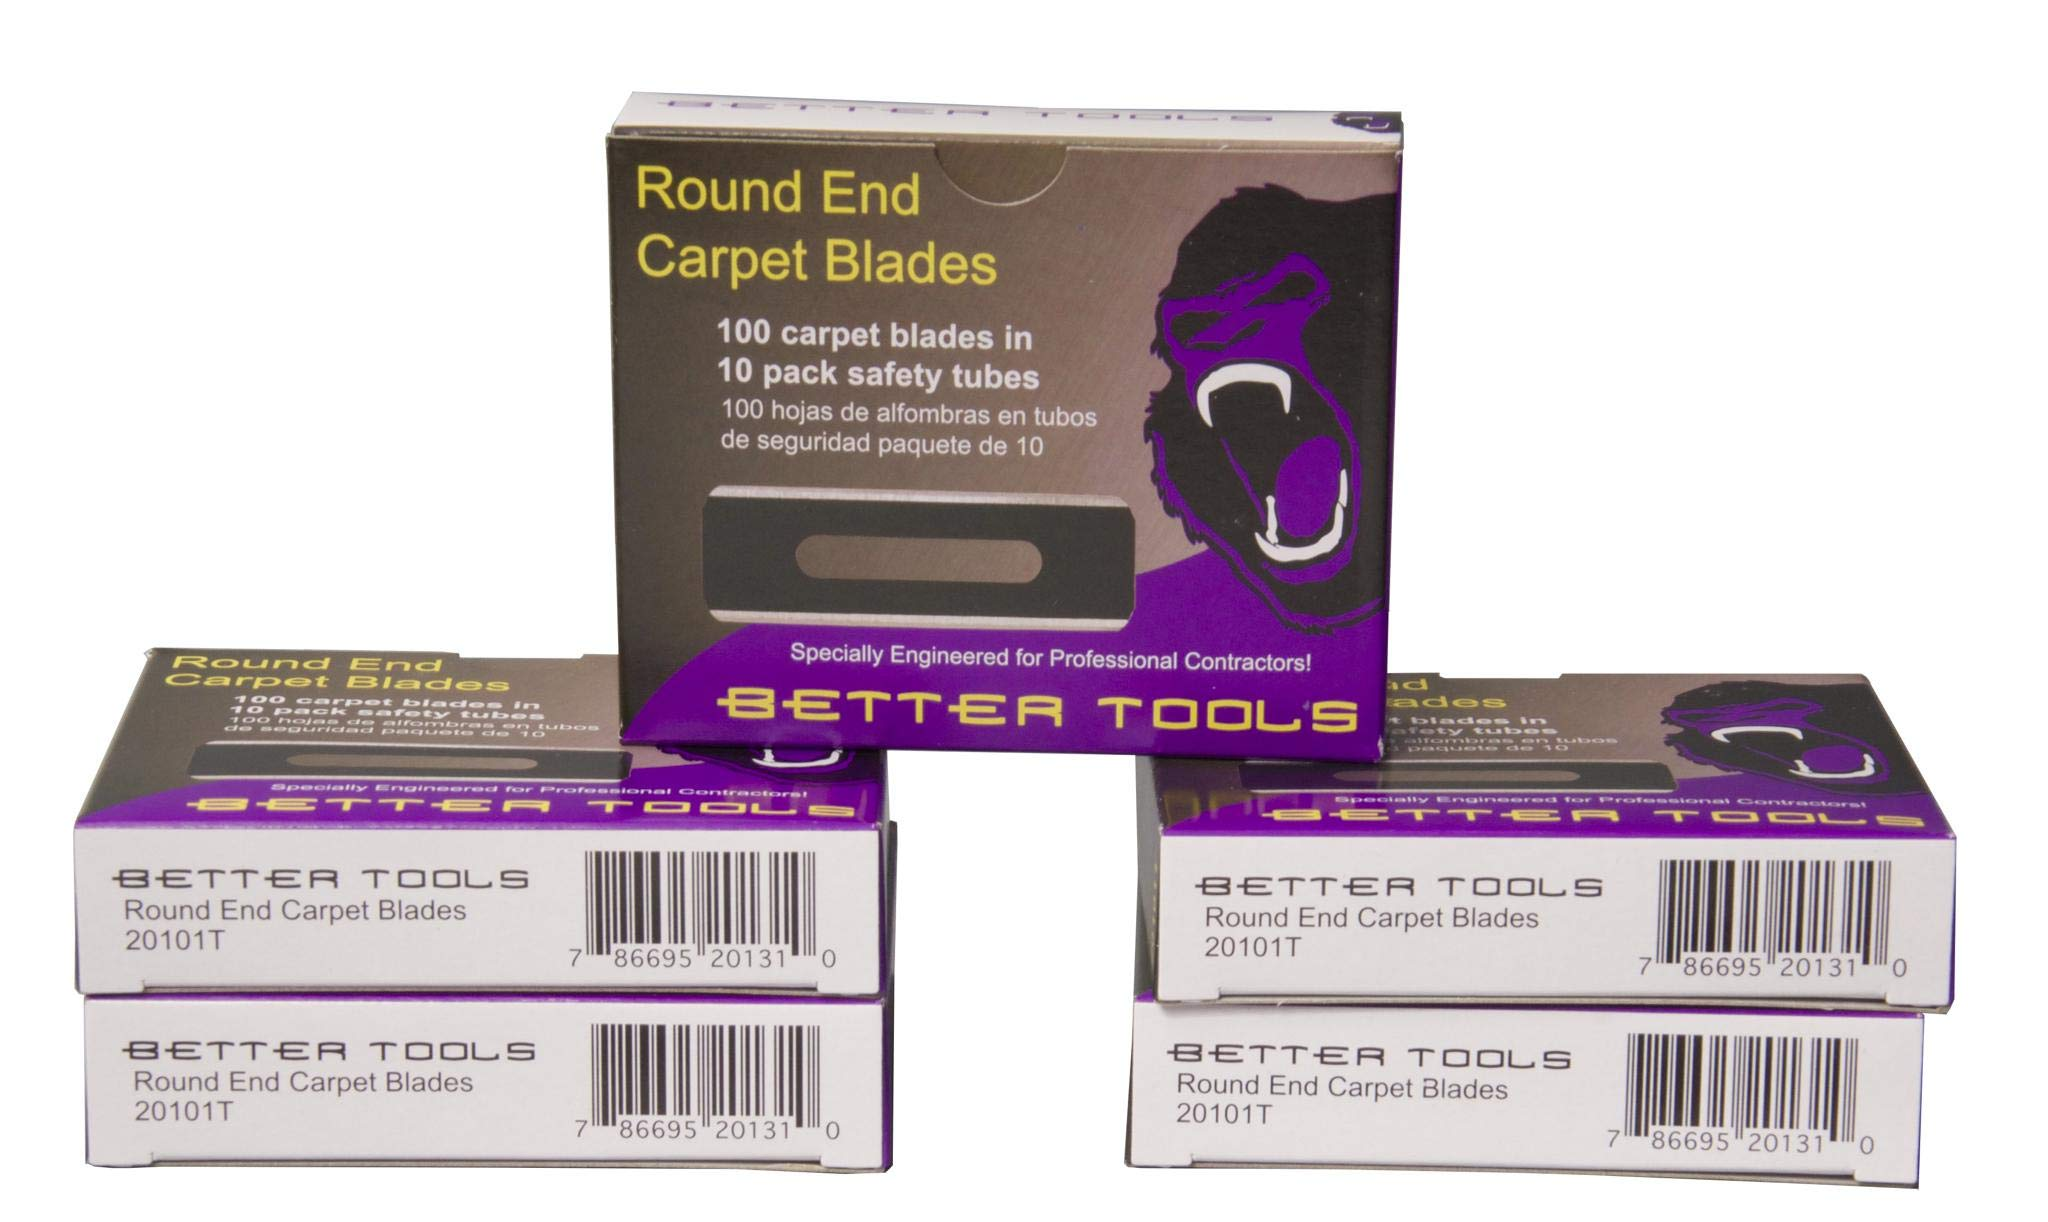 Better Tools - Carpet Blades - Round End (100 Blades/Pack) by Better Tools